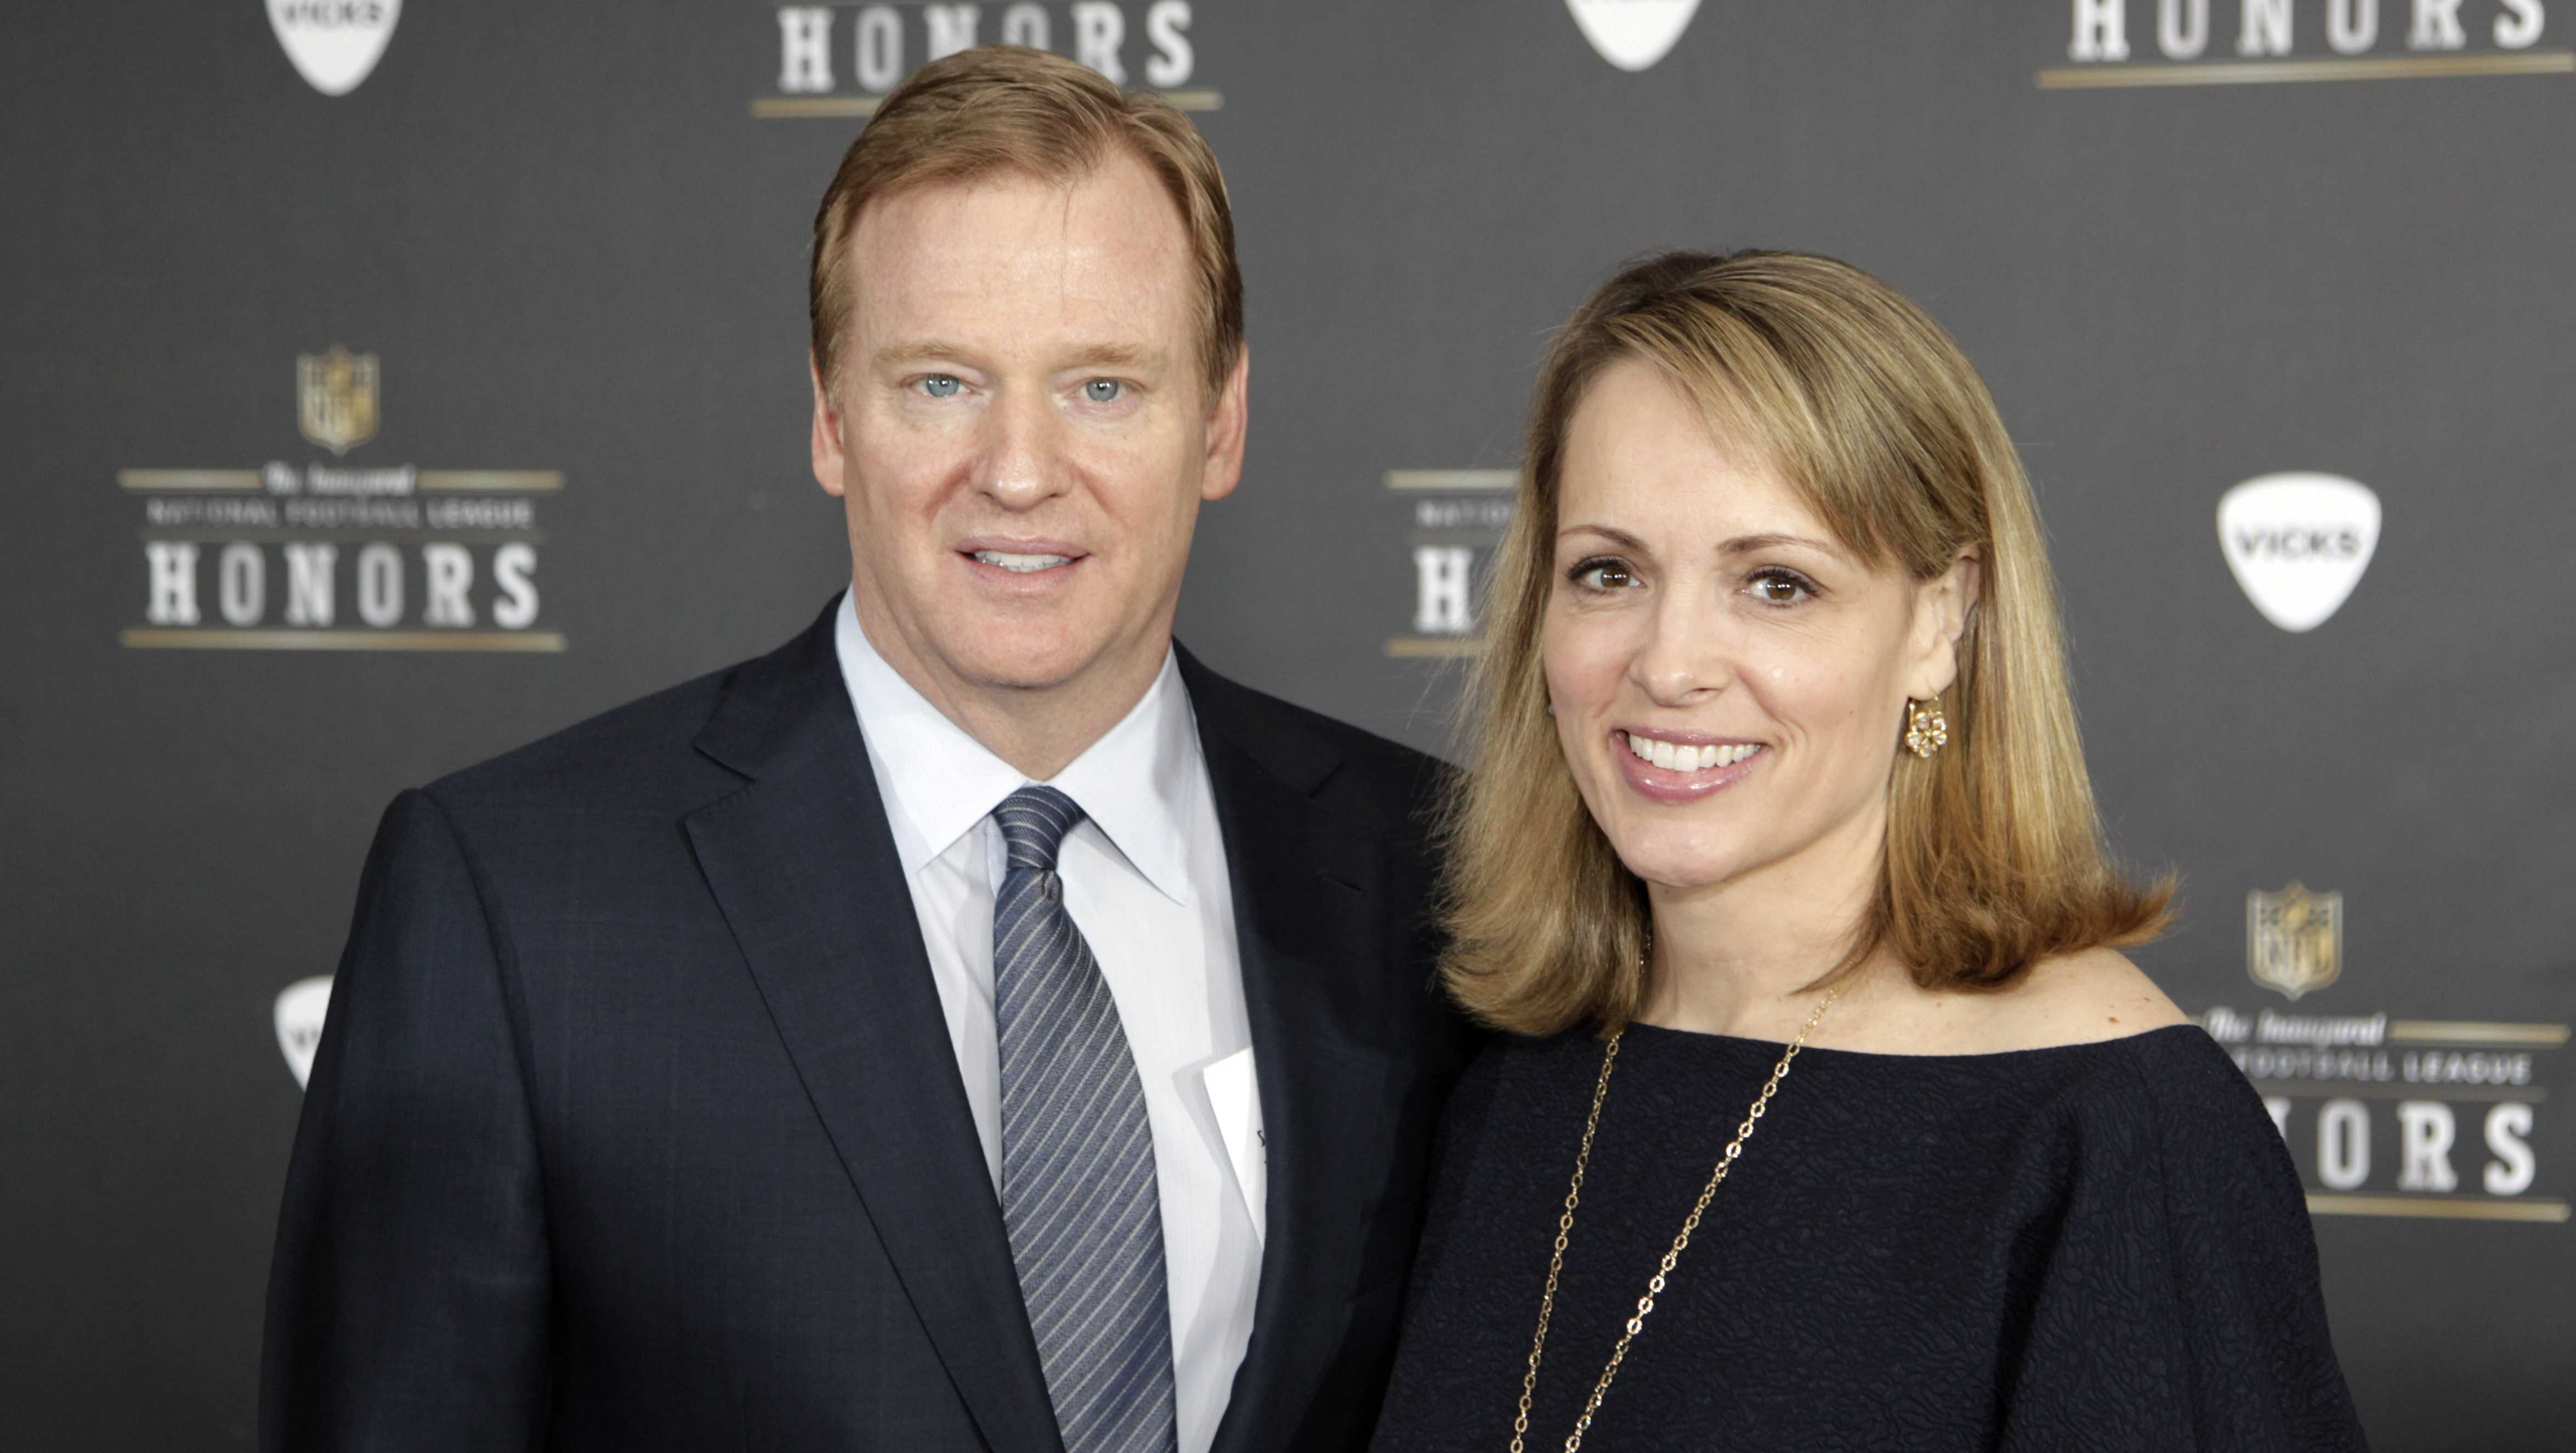 NFL Commissioner Roger Goodell and is wife, Jane Skinner, arrives for the inaugural NFL Honors show Saturday, Feb. 4, 2012, in Indianapolis.